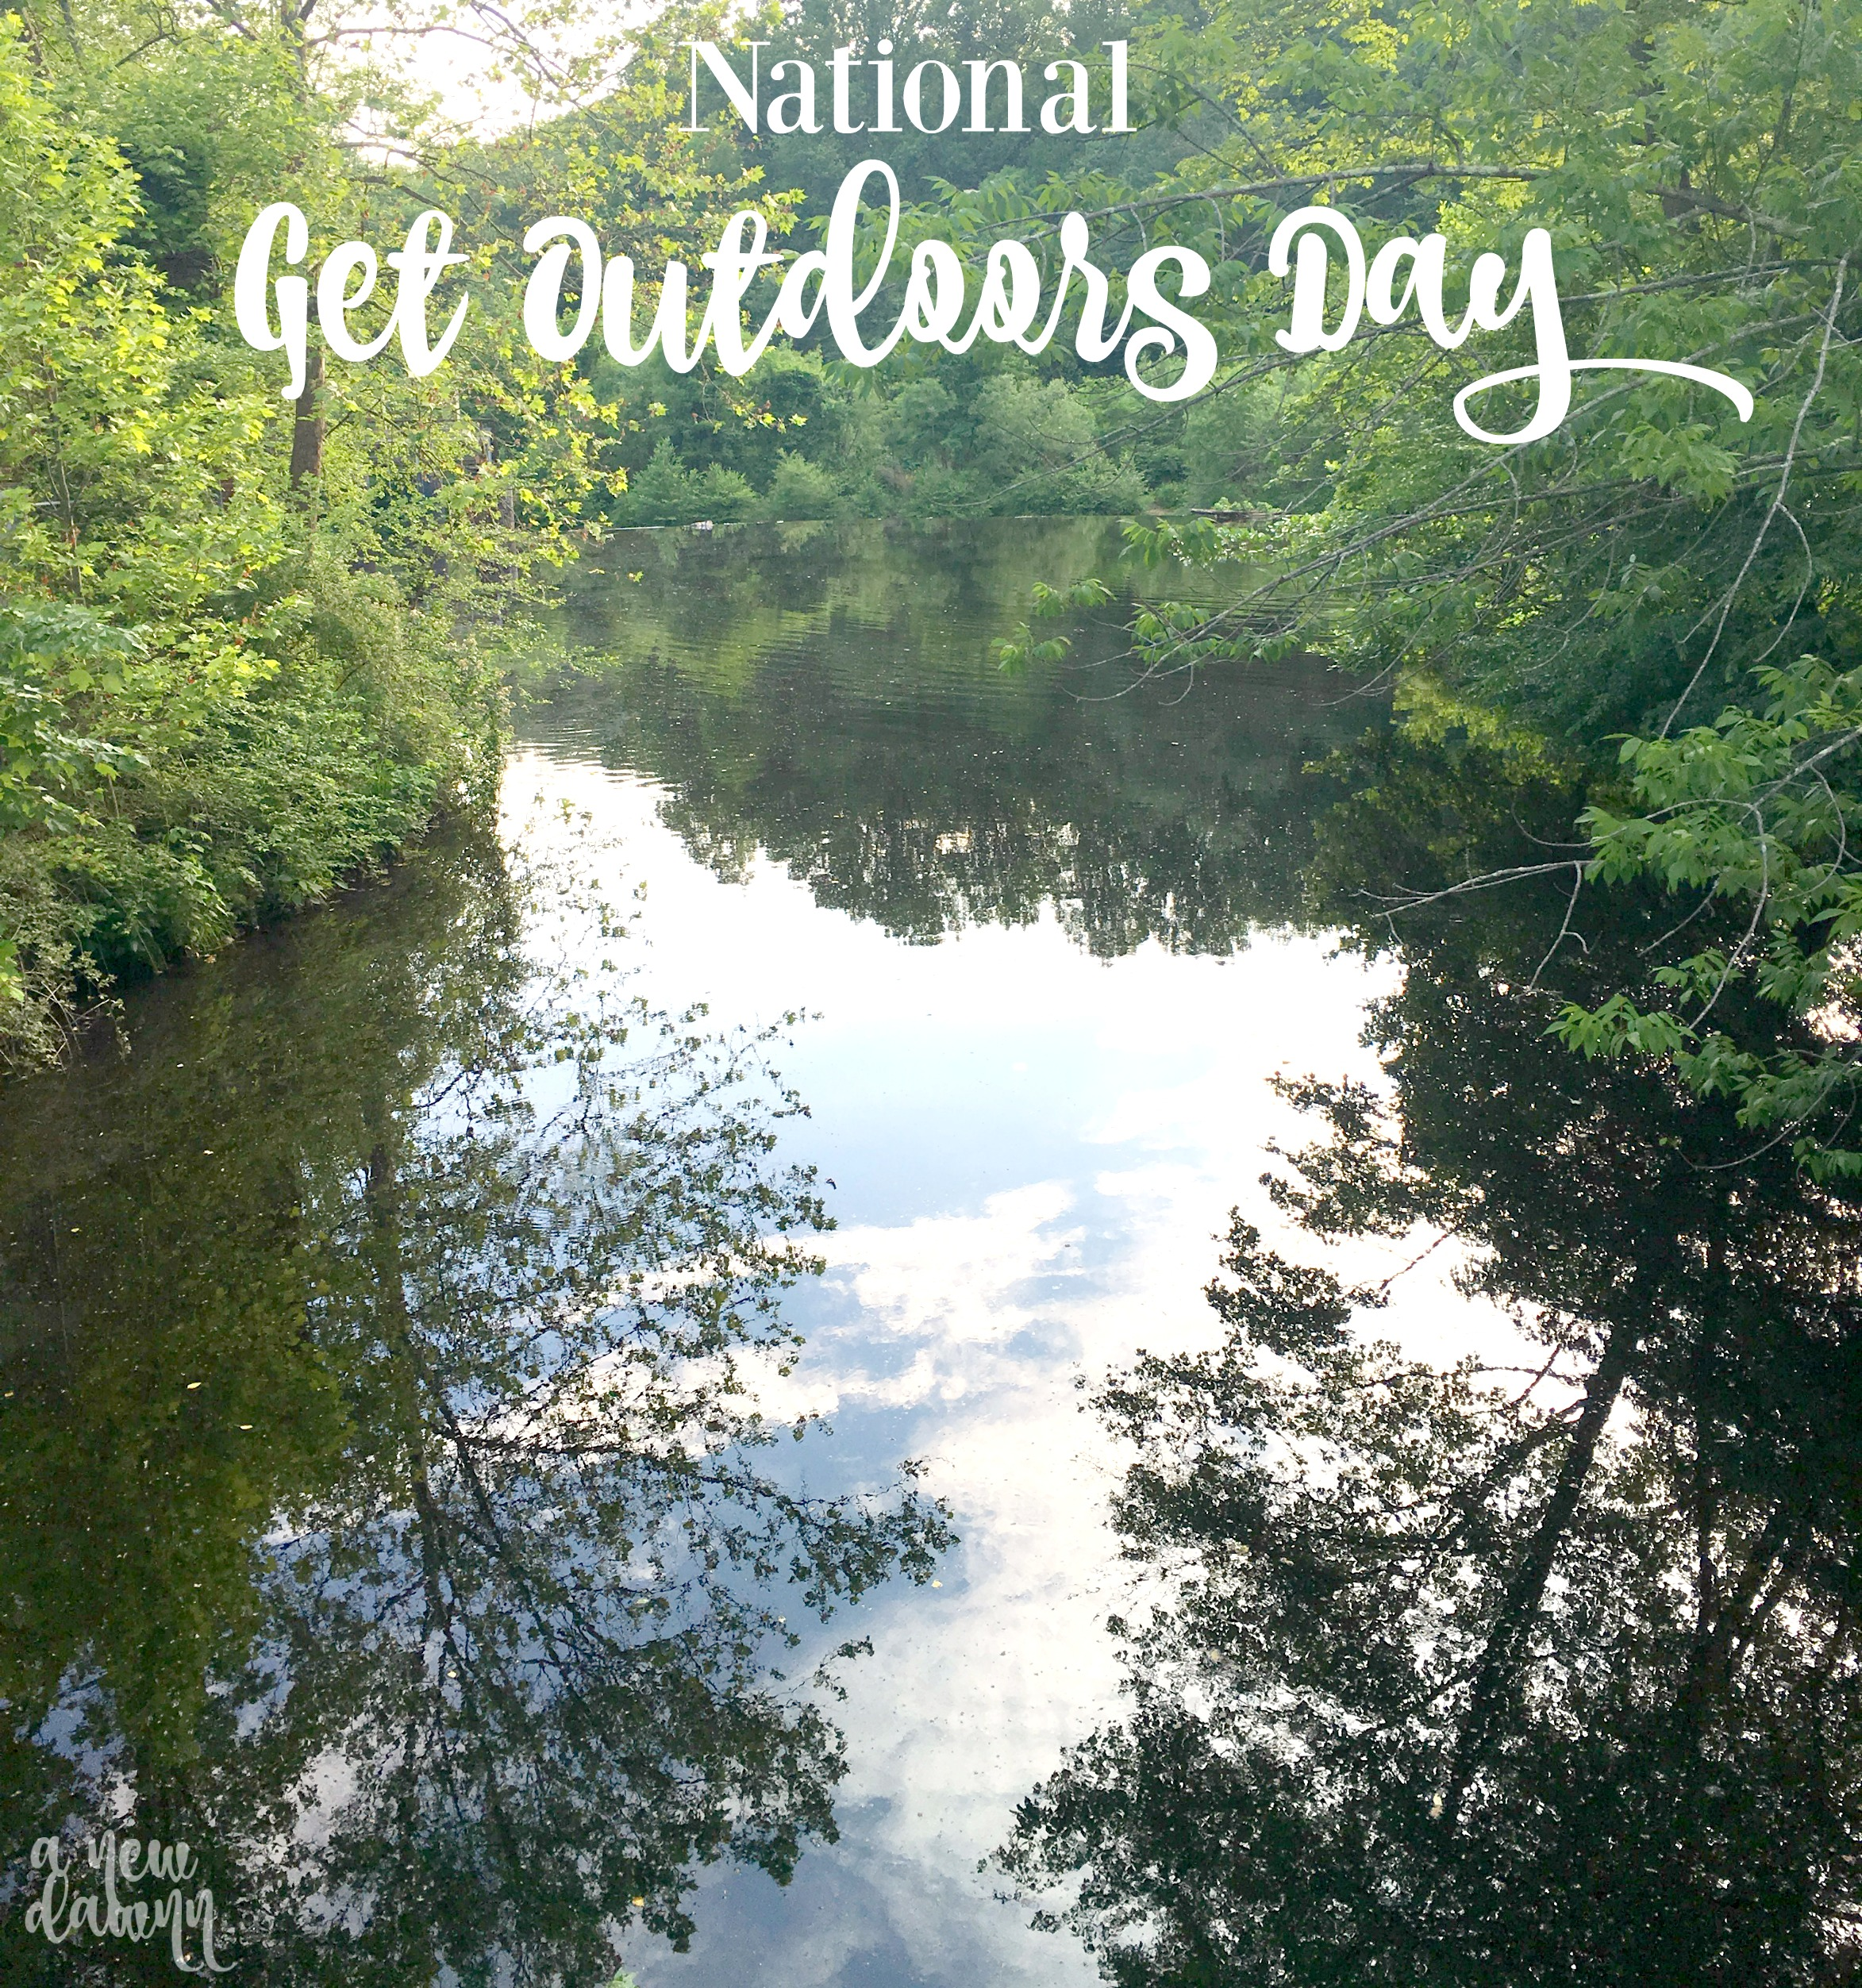 Get-outdoors-day